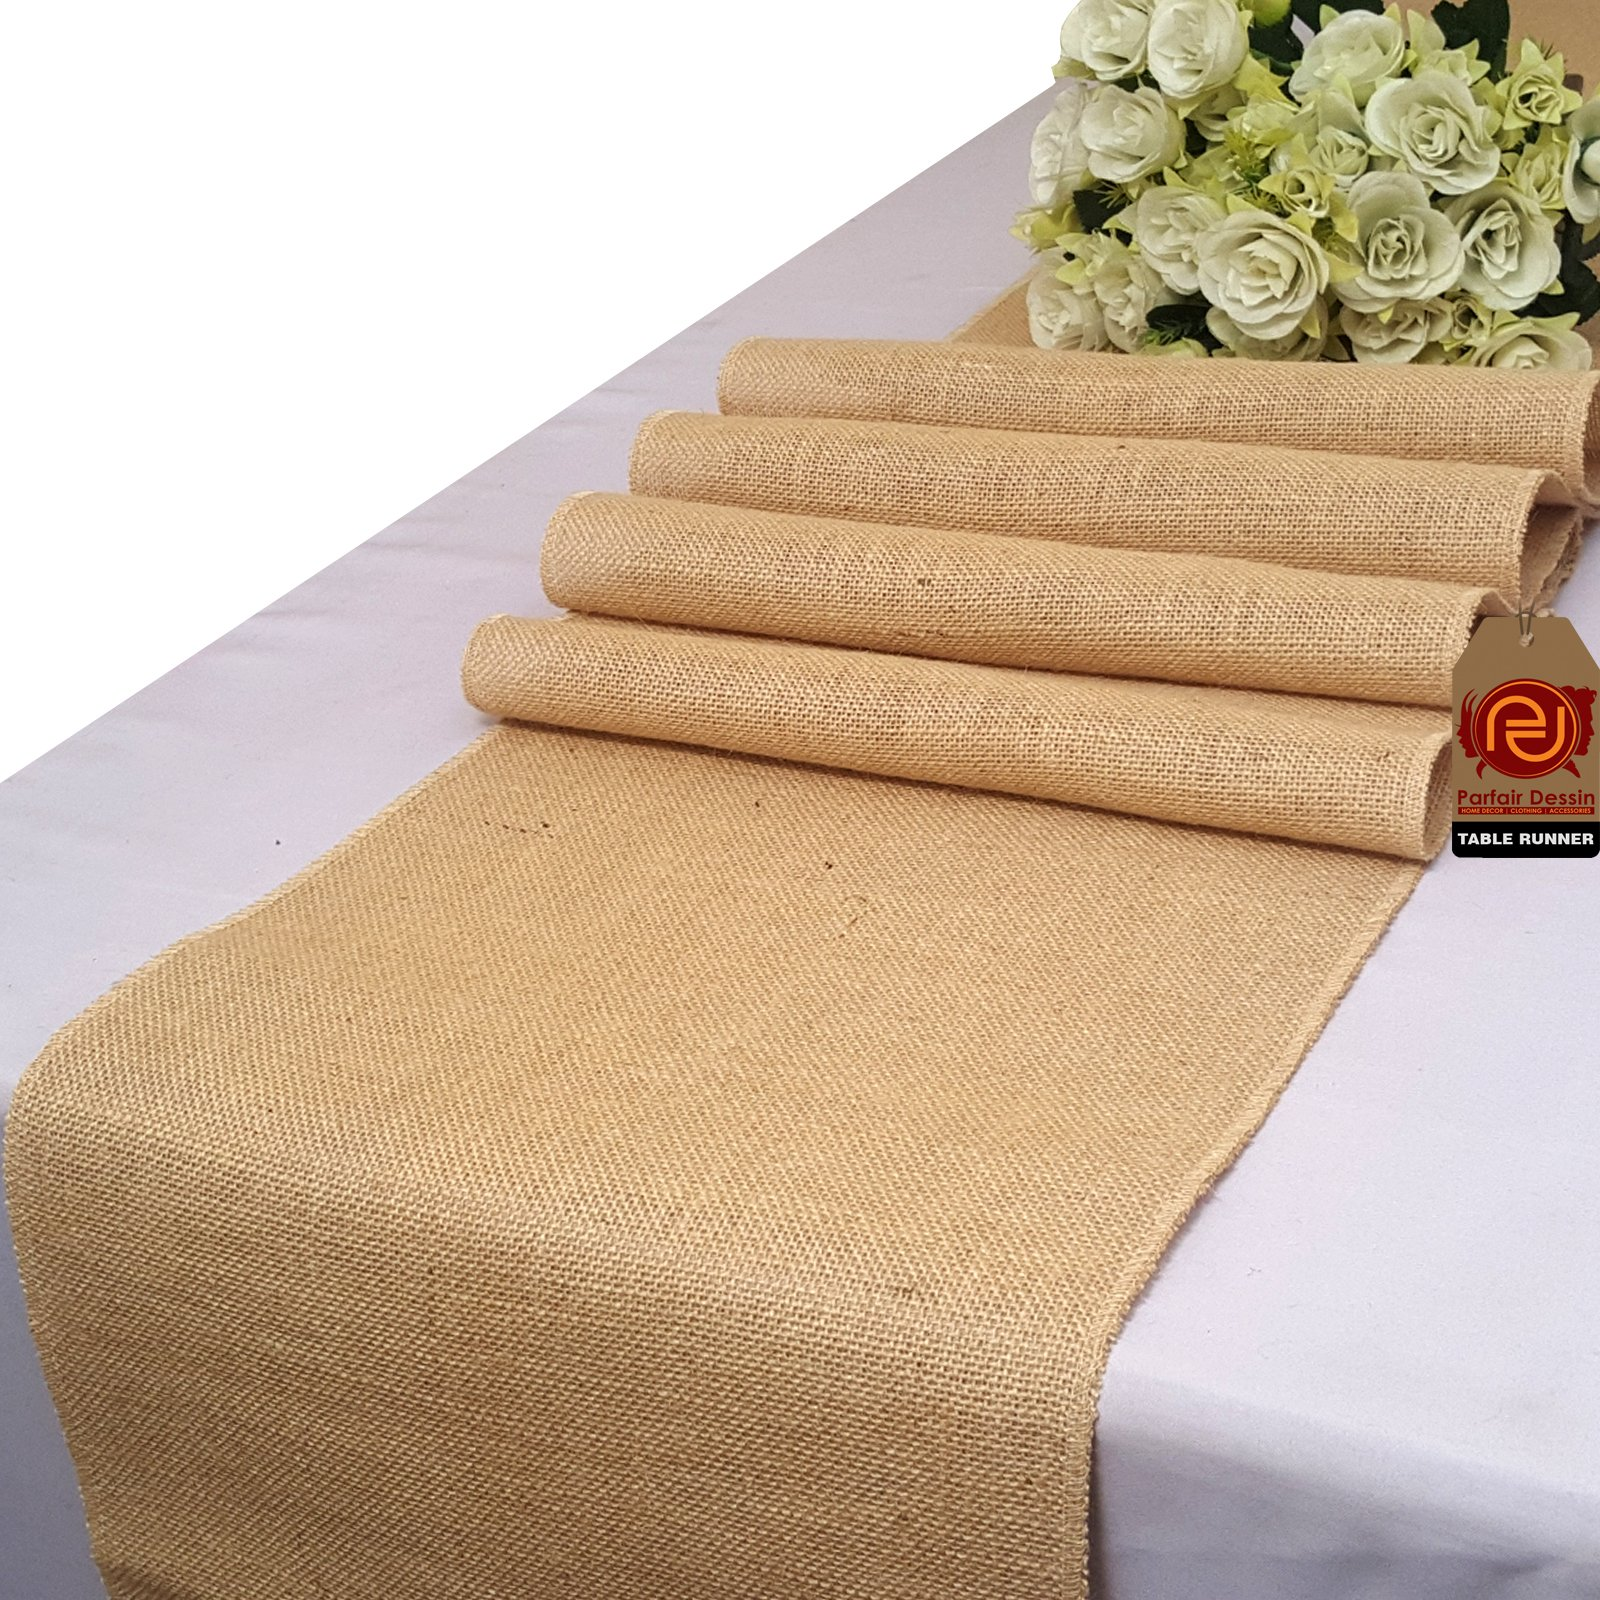 Parfair Dessin Natural Burlap Jute Table Runner for Rustic Primitive Country Wedding Party Farmhouse Decoration Spring Bridal Baby Shower Decor - Overlocked Edges (14 in. x 84 in, Natural)